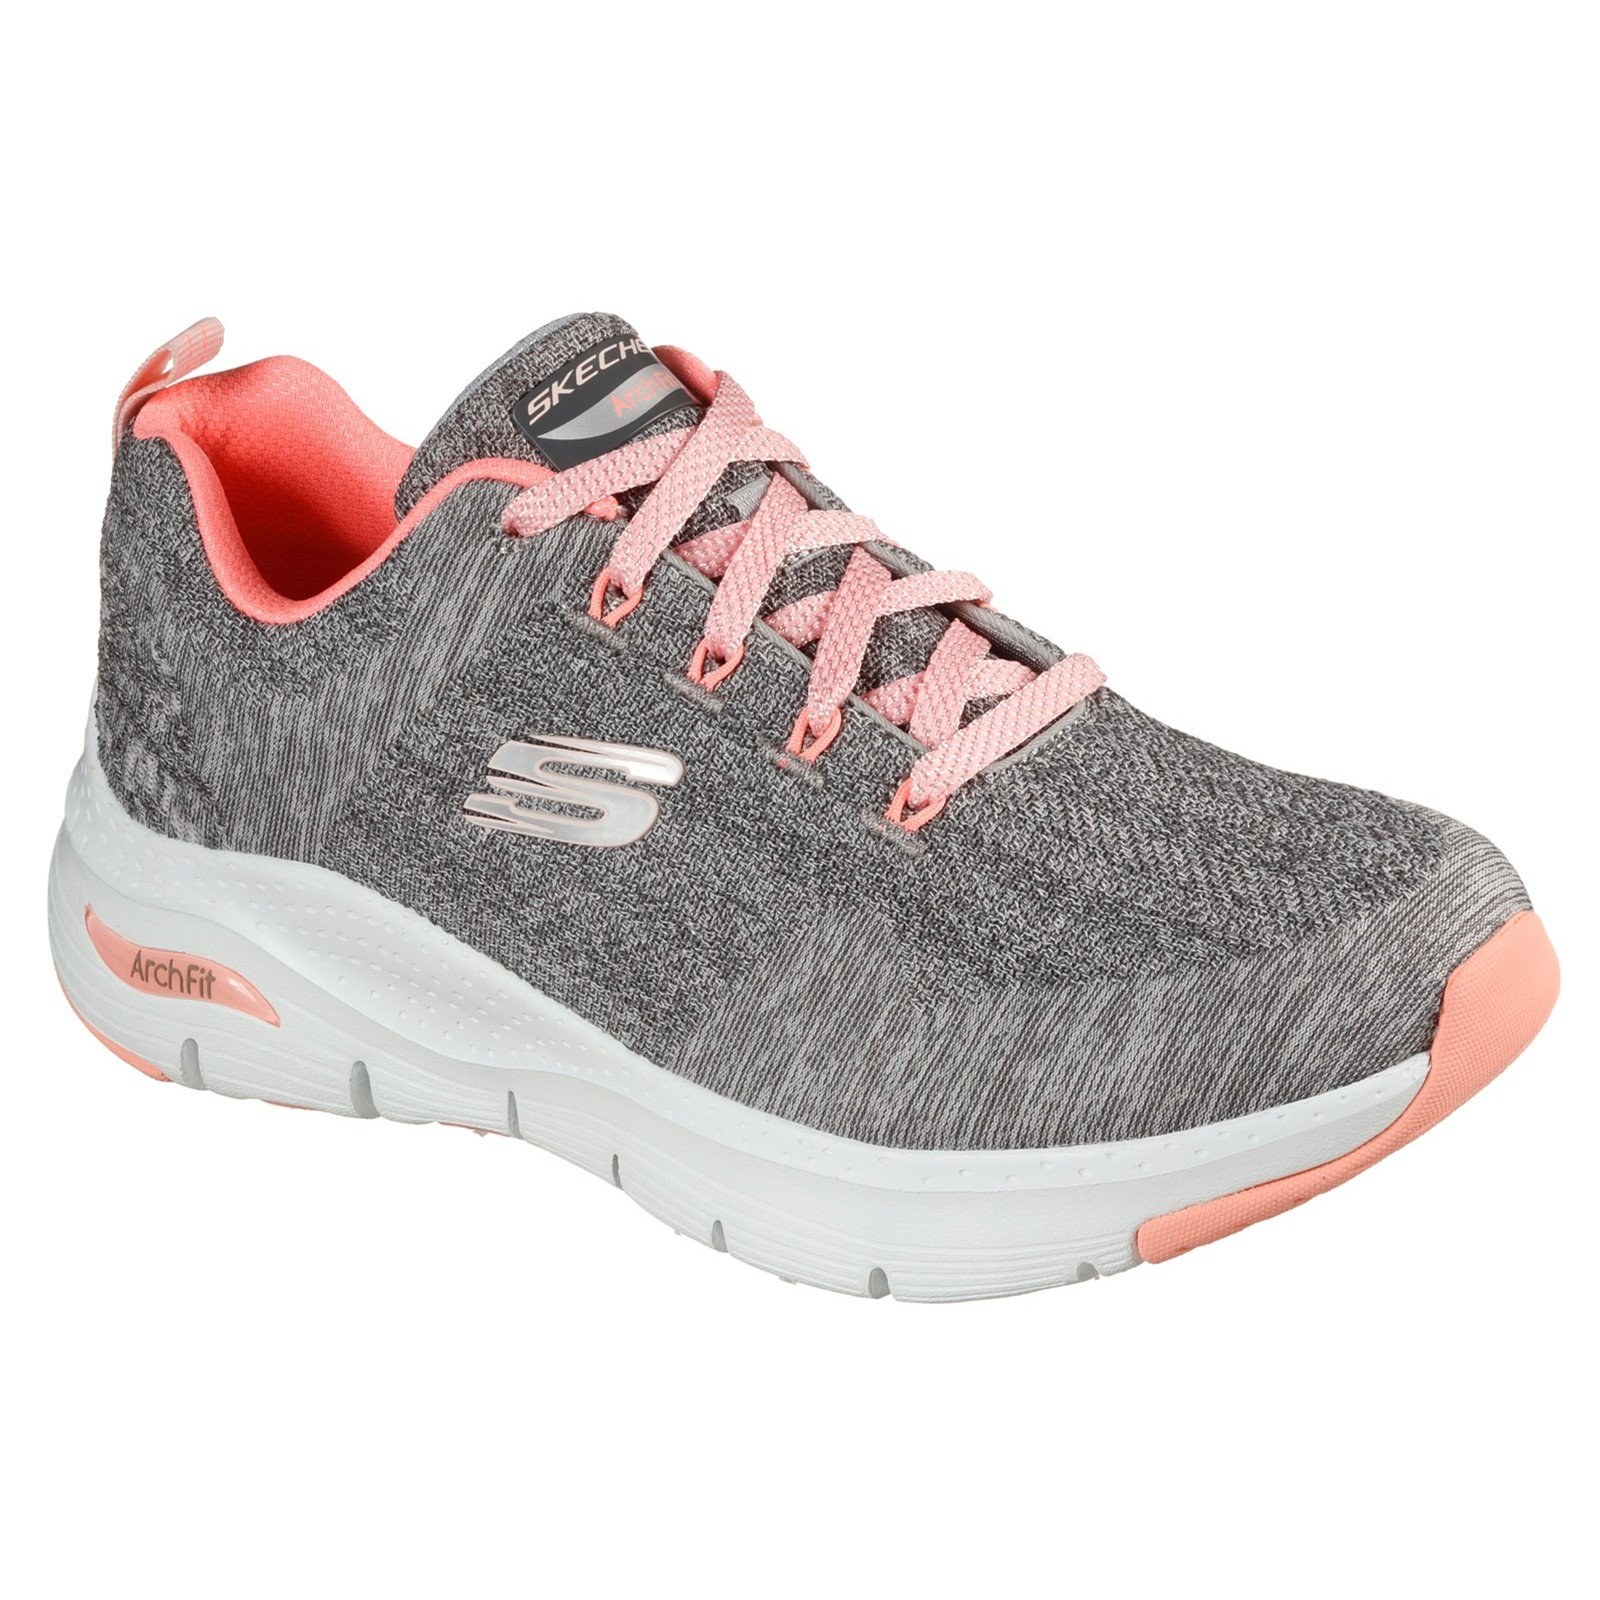 Skechers Women's Arch Fit Comfy Wave Wide Trainer Multicolor 33065 - Grey/Pink 4